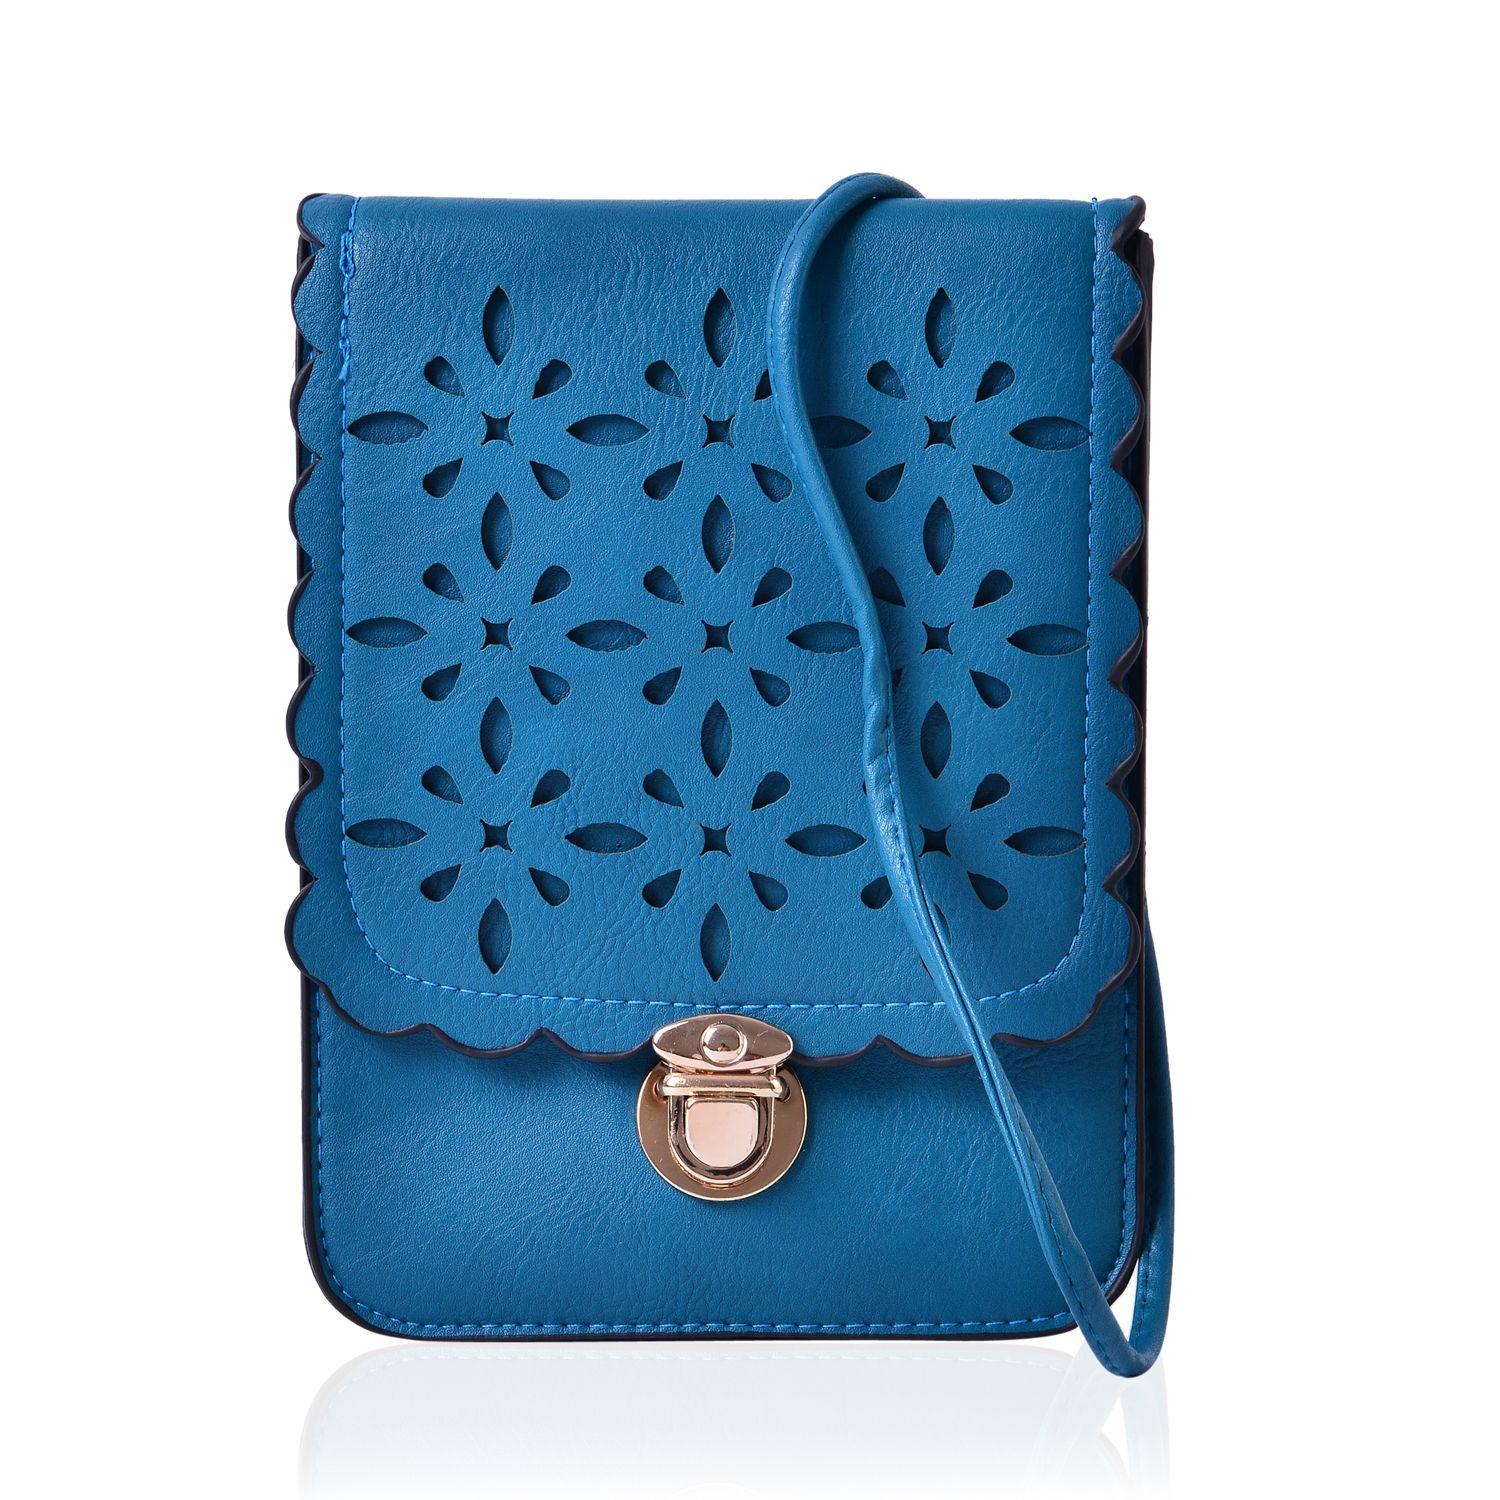 Teal Faux Leather Crossbody Bag (6x8.5 in)